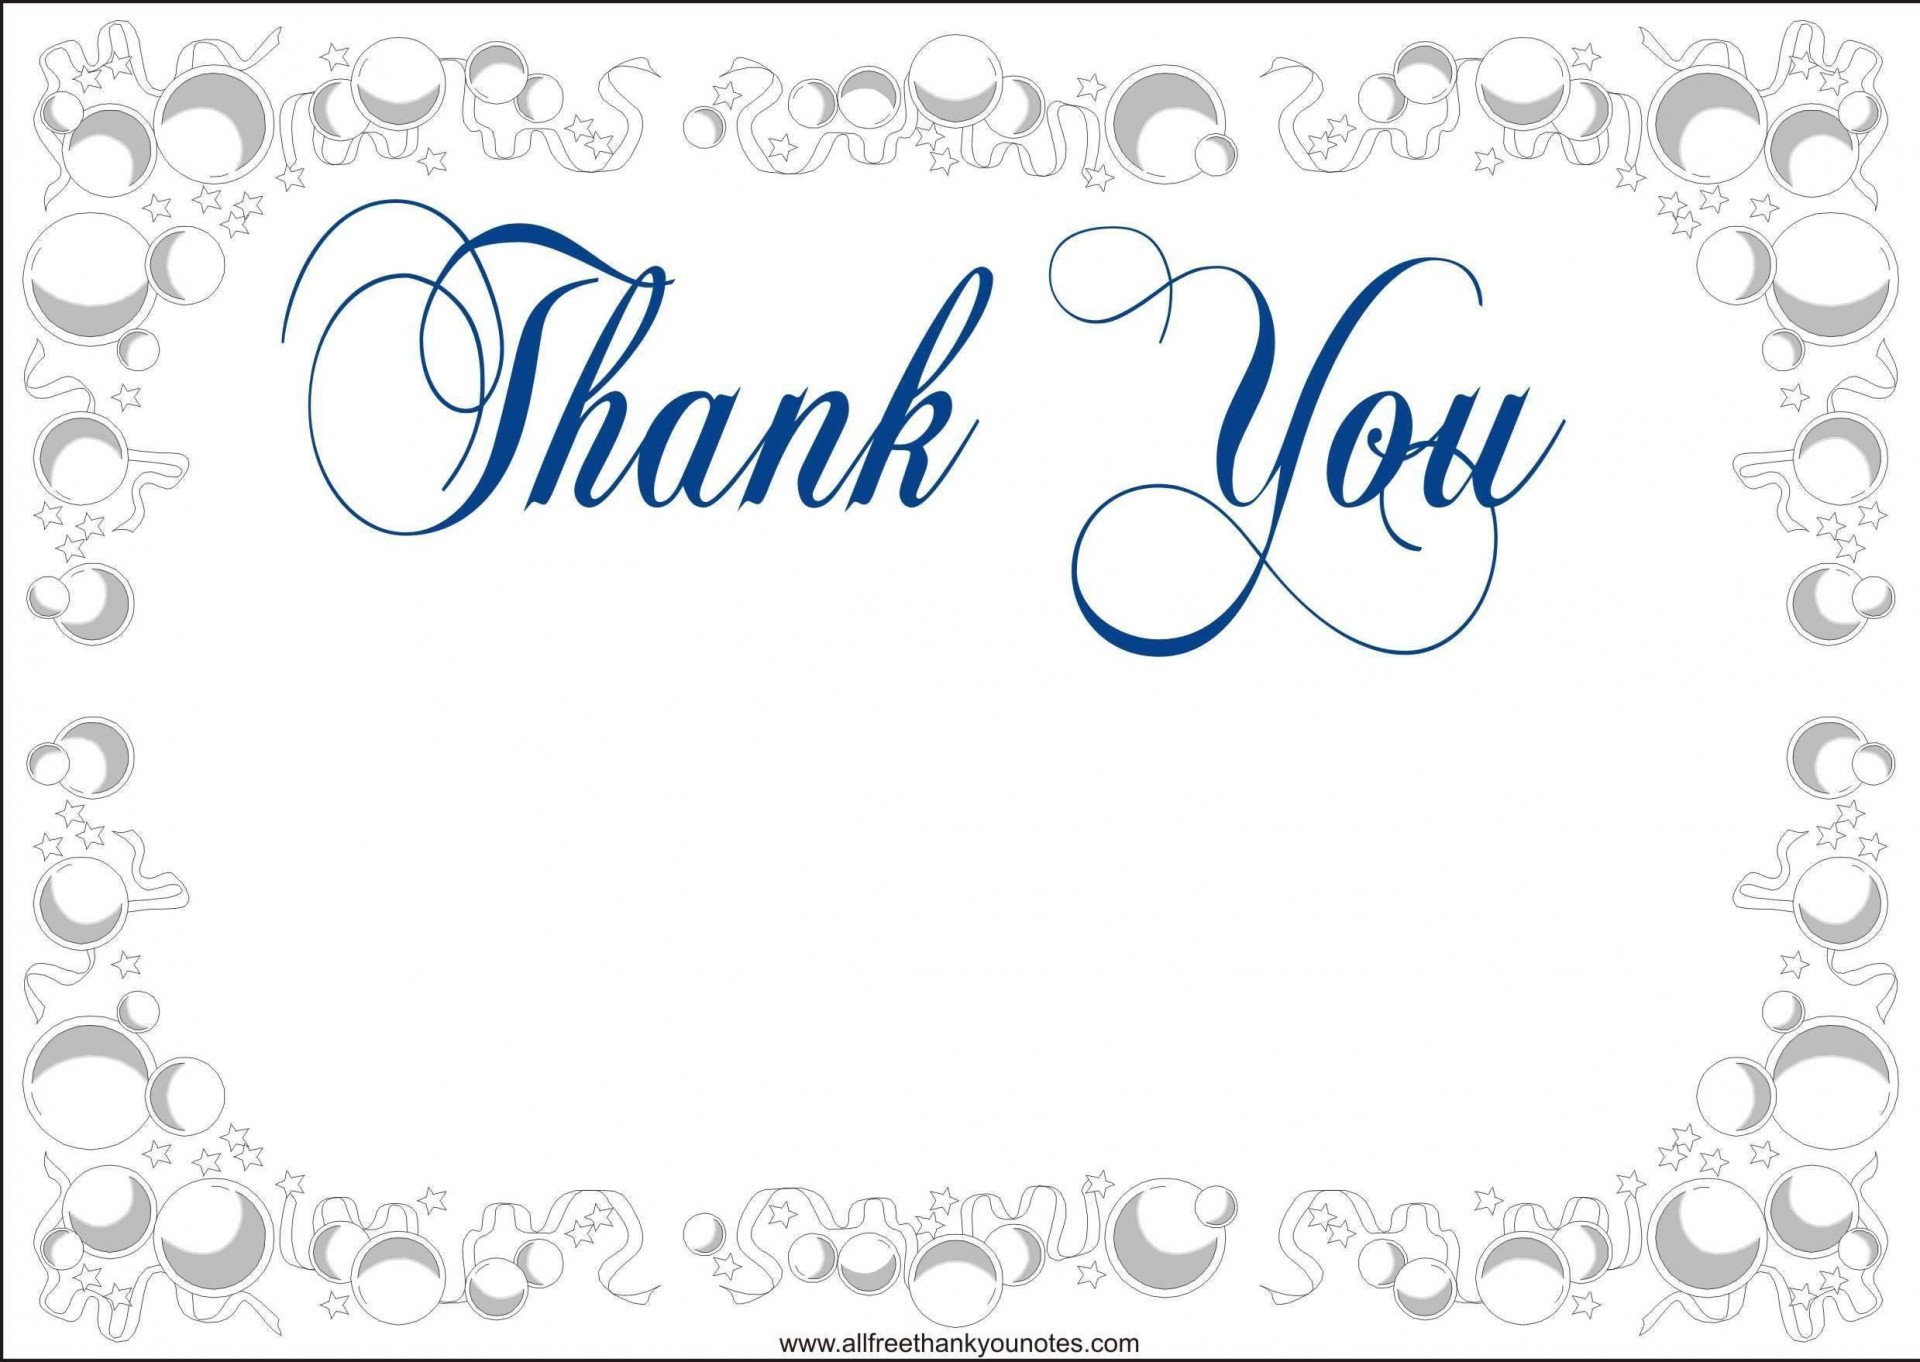 003 Awesome Thank You Card Template Sample  Wedding Busines Word Free1920